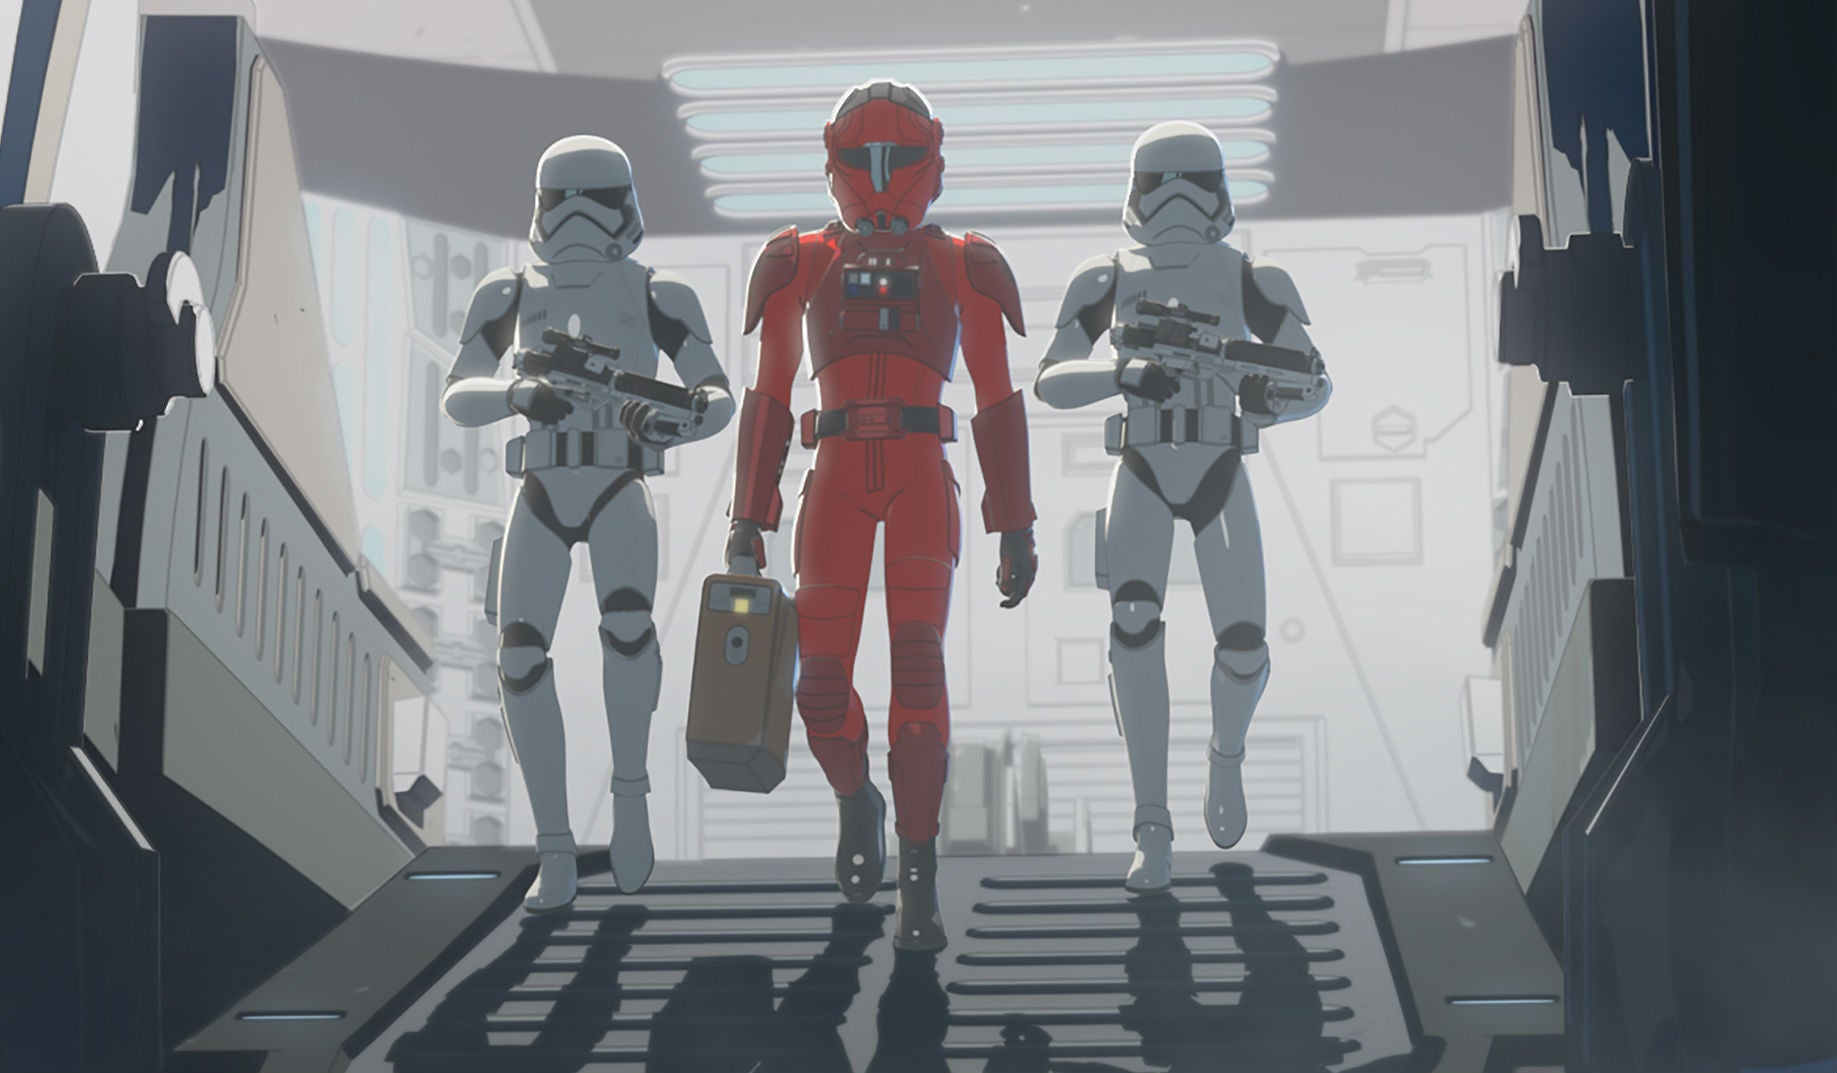 The First Order Just Executed A Dastardly Plan And We Love It